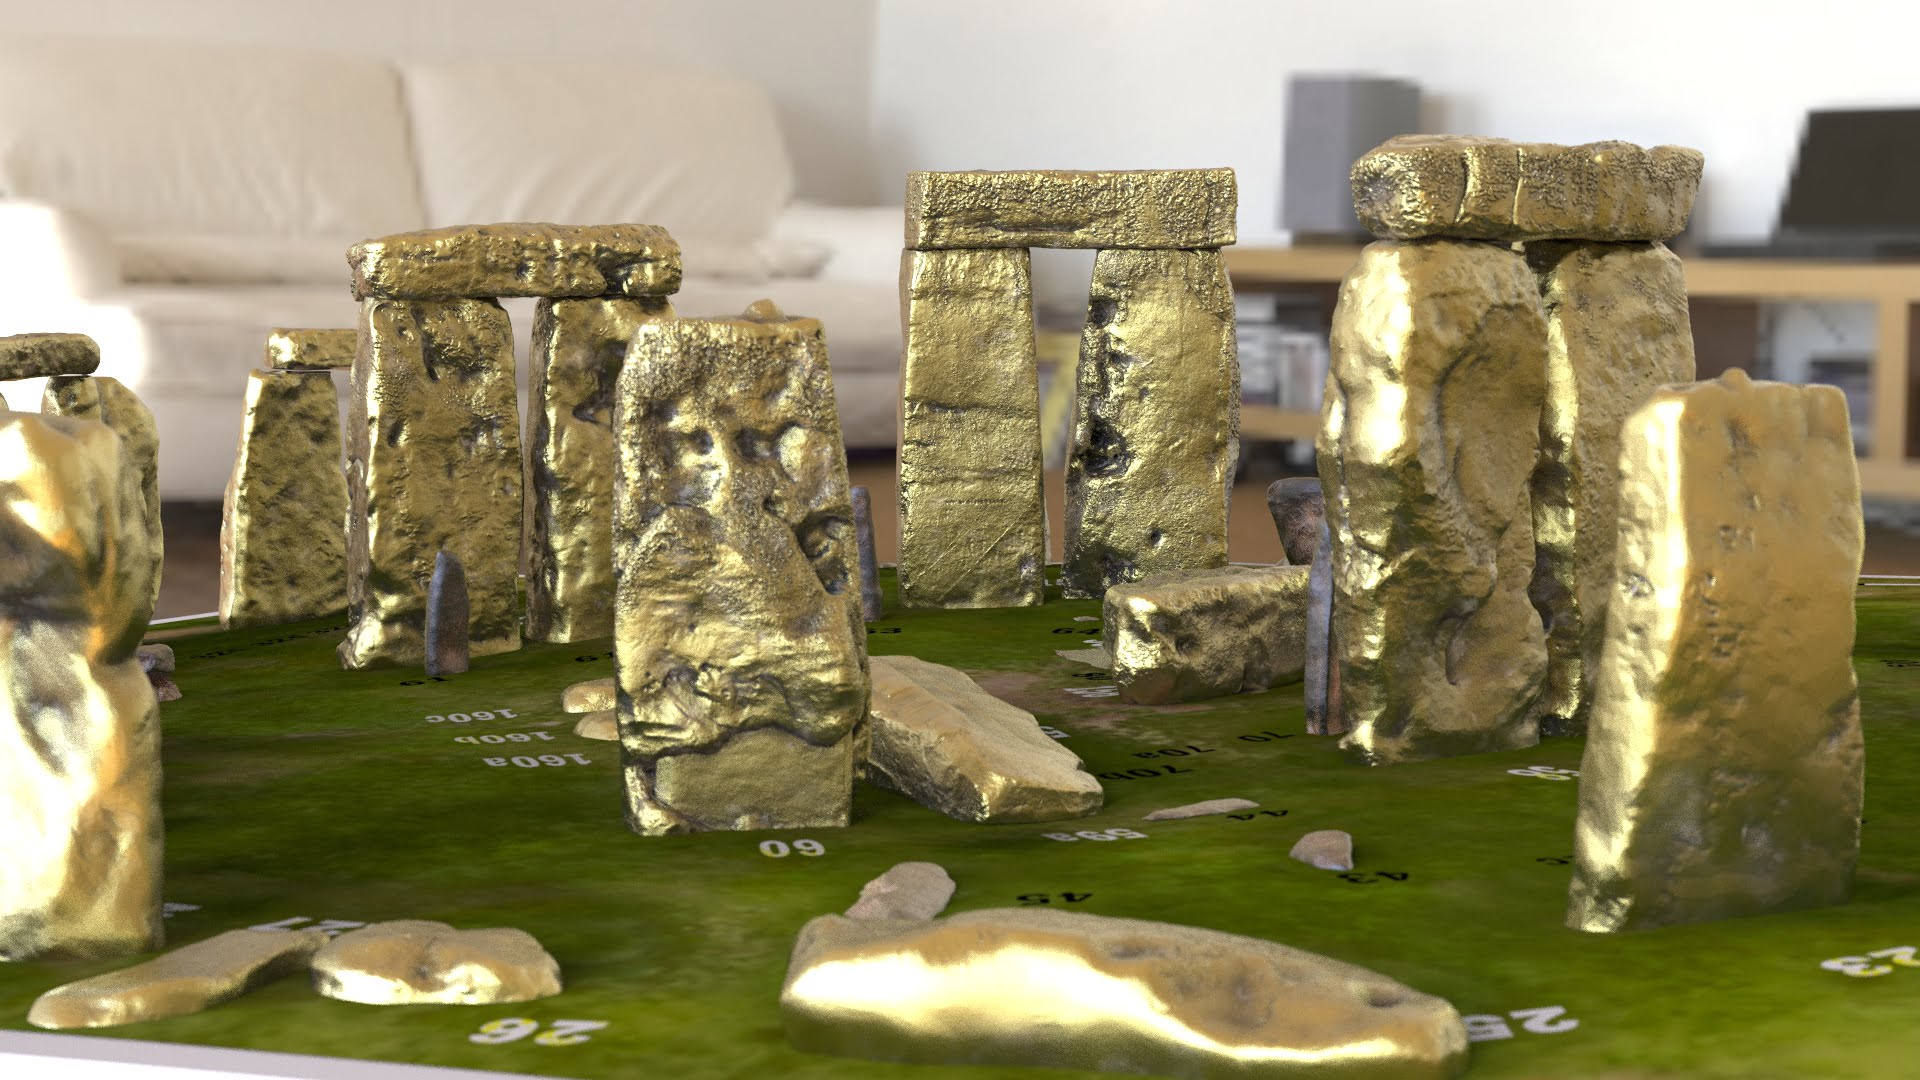 Buy Stonehenge Models: Old brass sarsens with rusted iron bluestones Stonehenge model replica on grass decal bass numbered stones.65  - 200th scale pick n mix -